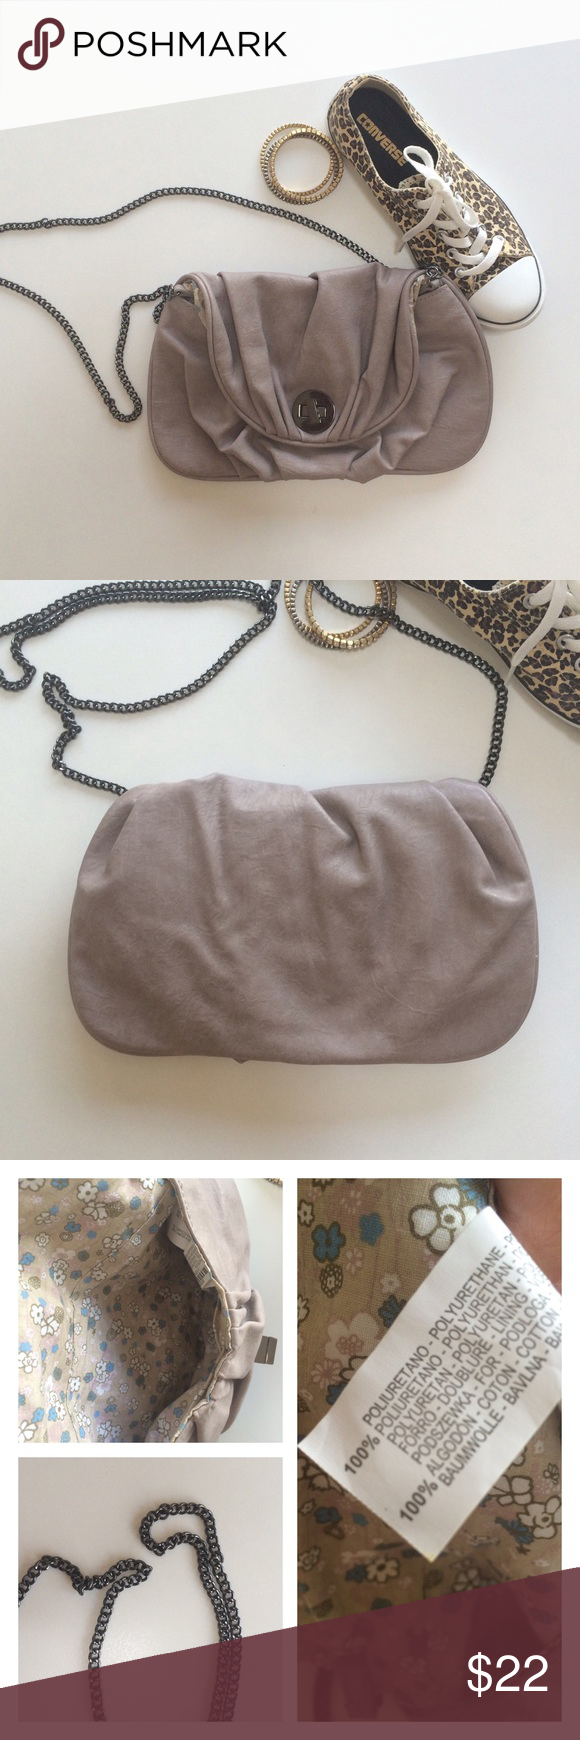 """Zara small bag This item has a couple scratches or minor tears in fabric just like shown in the last pic. It still has lots to offer! Chain is 22"""" long (you can wear on shoulder or as cross bag). 11"""" long, height 7"""". Zara Bags Crossbody Bags"""